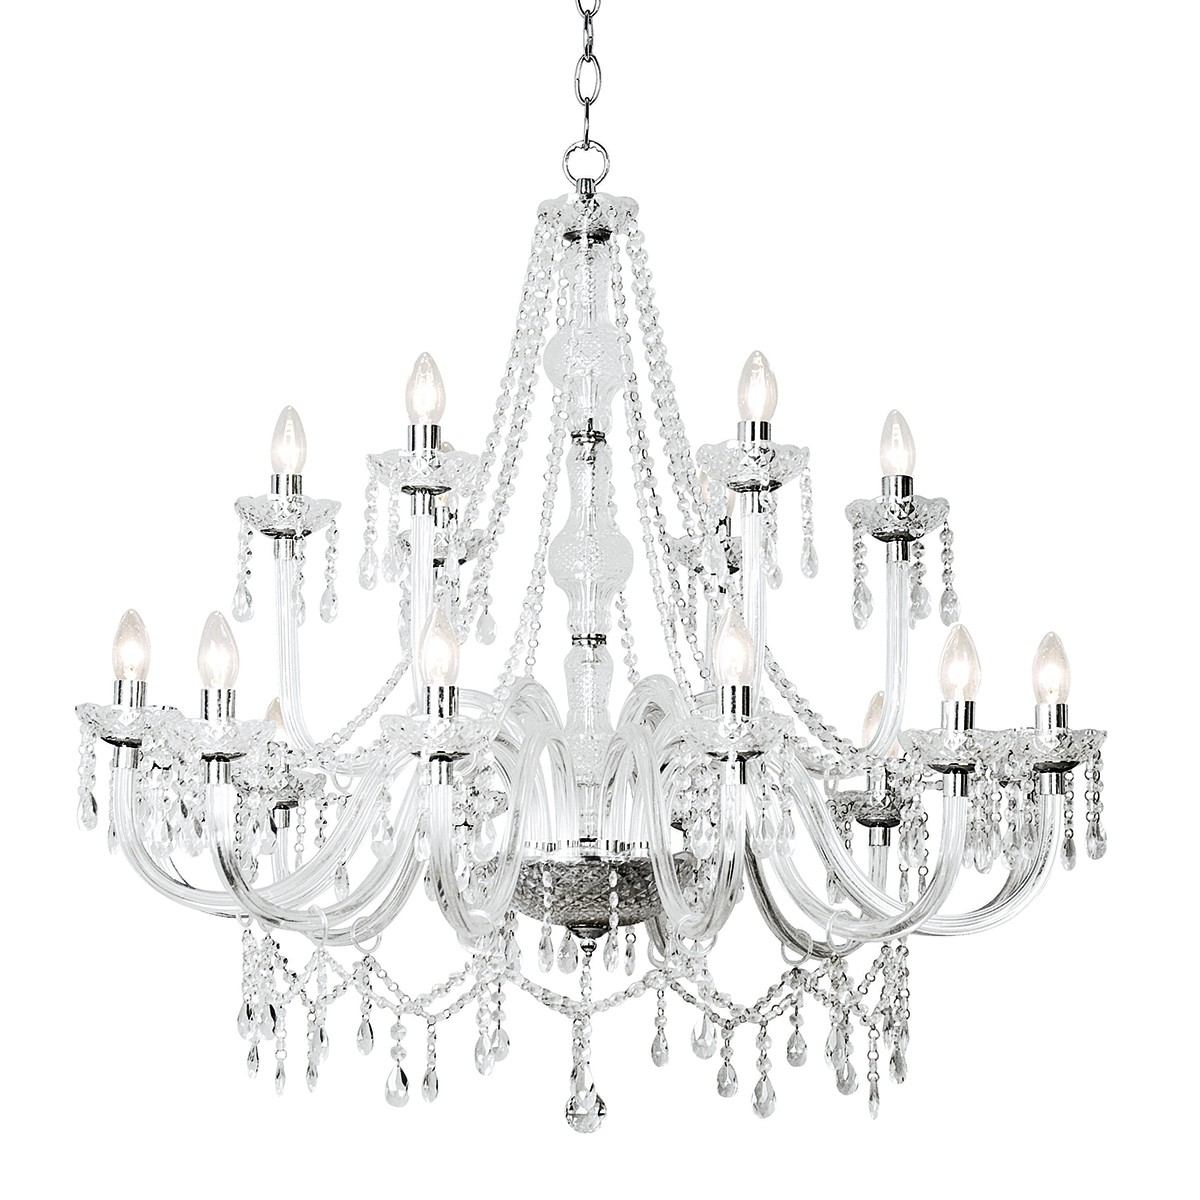 Katie 18 Light Chandelier Dual Mount Acrylic Glass Shade Sold Separately With Regard To 2018 Acrylic Chandelier Lighting (View 8 of 20)